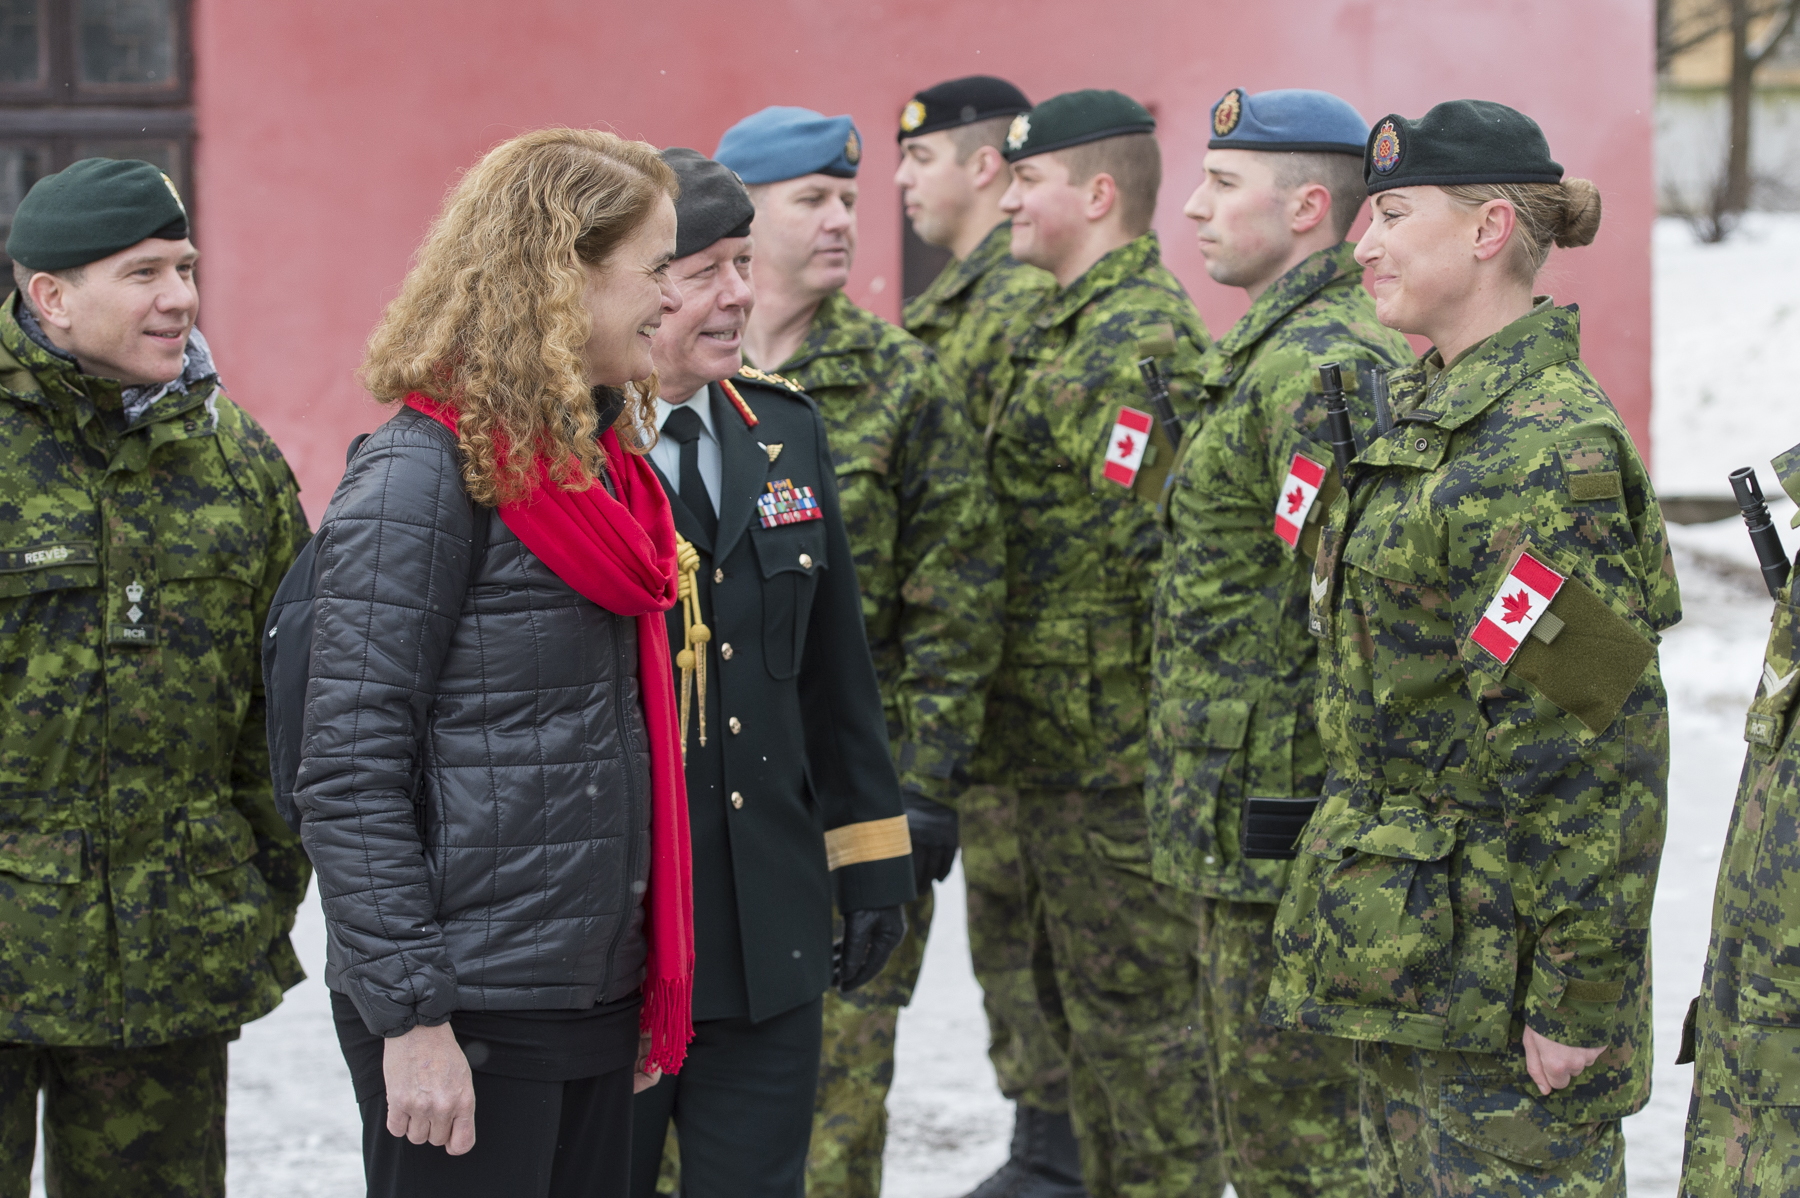 Canadian's Operation UNIFIER was crucial to the reopening of this academy in September 2017 after it had been decommissioned in 2012.